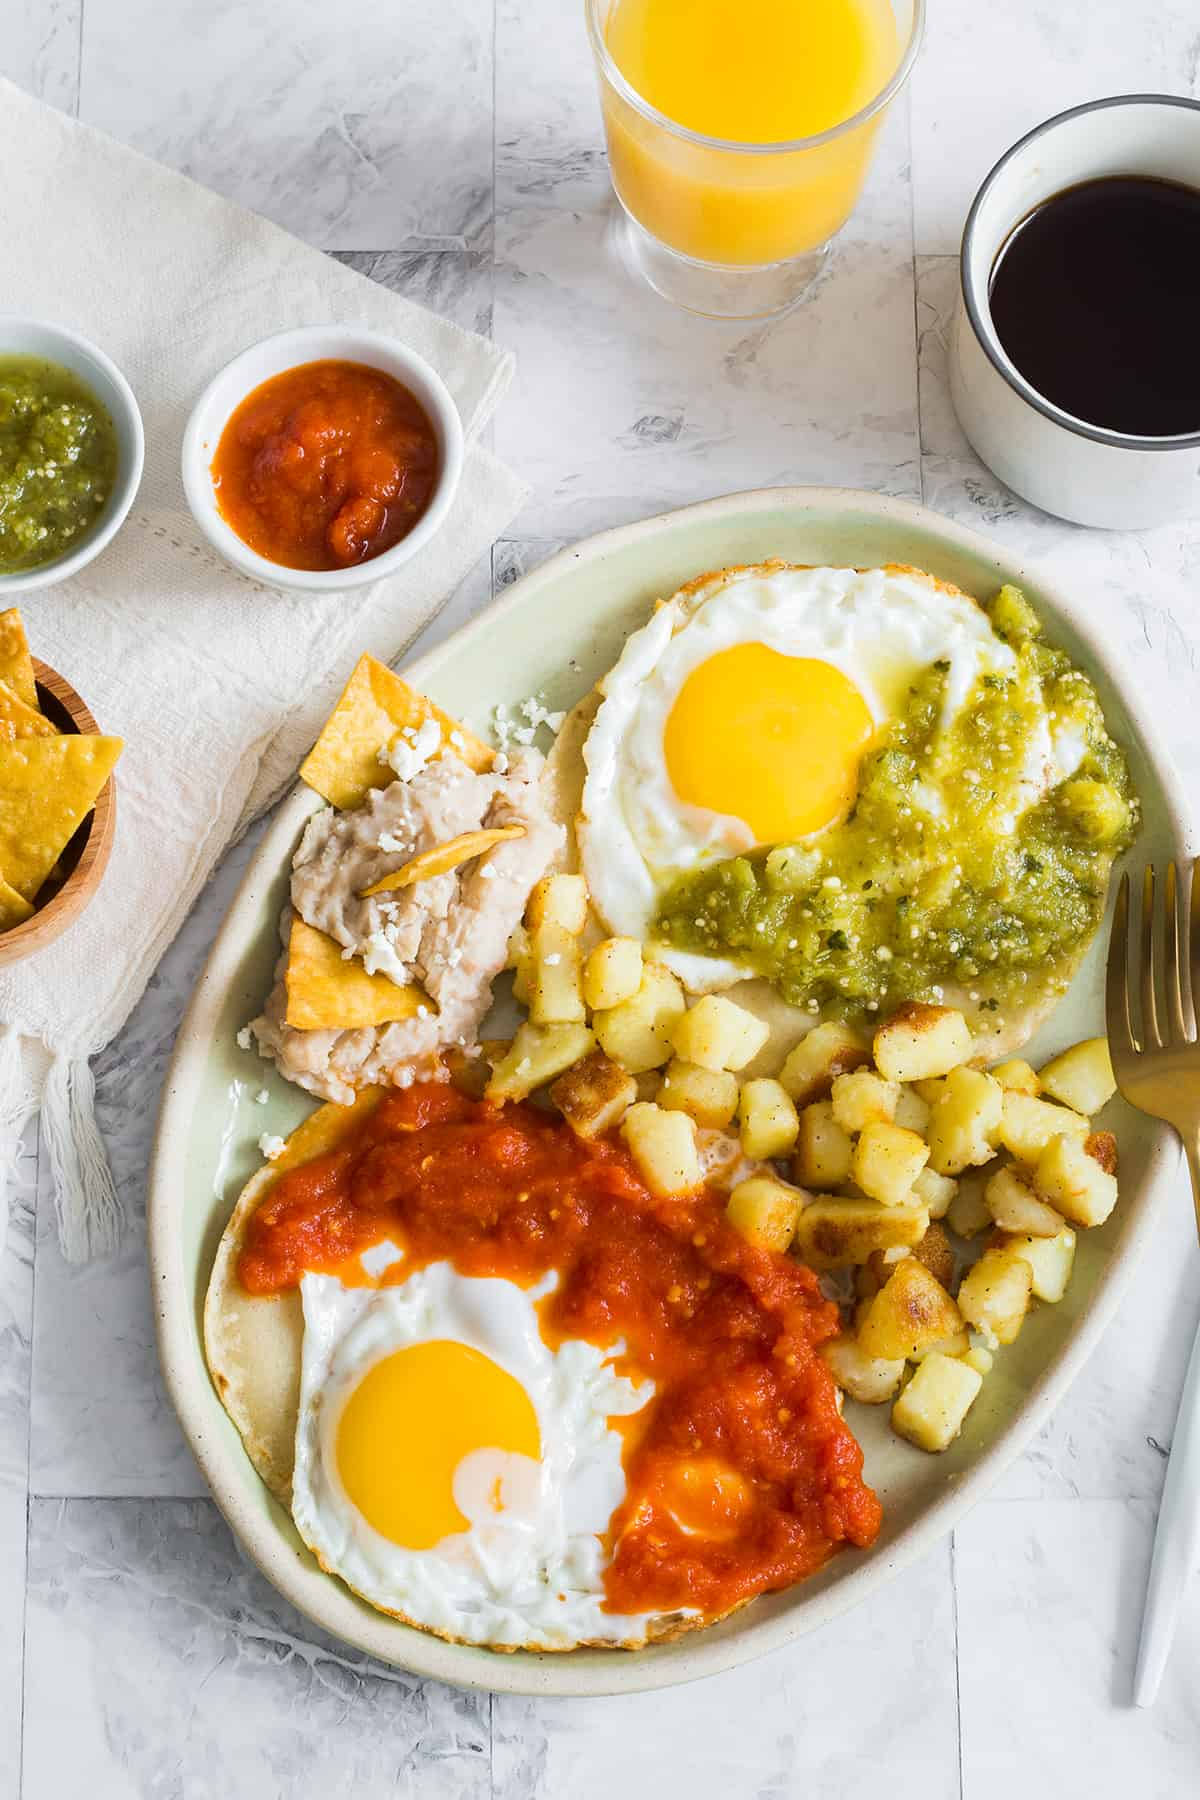 Huevos divorciados served on an oval plate and accompanied with refried beans and potatoes.